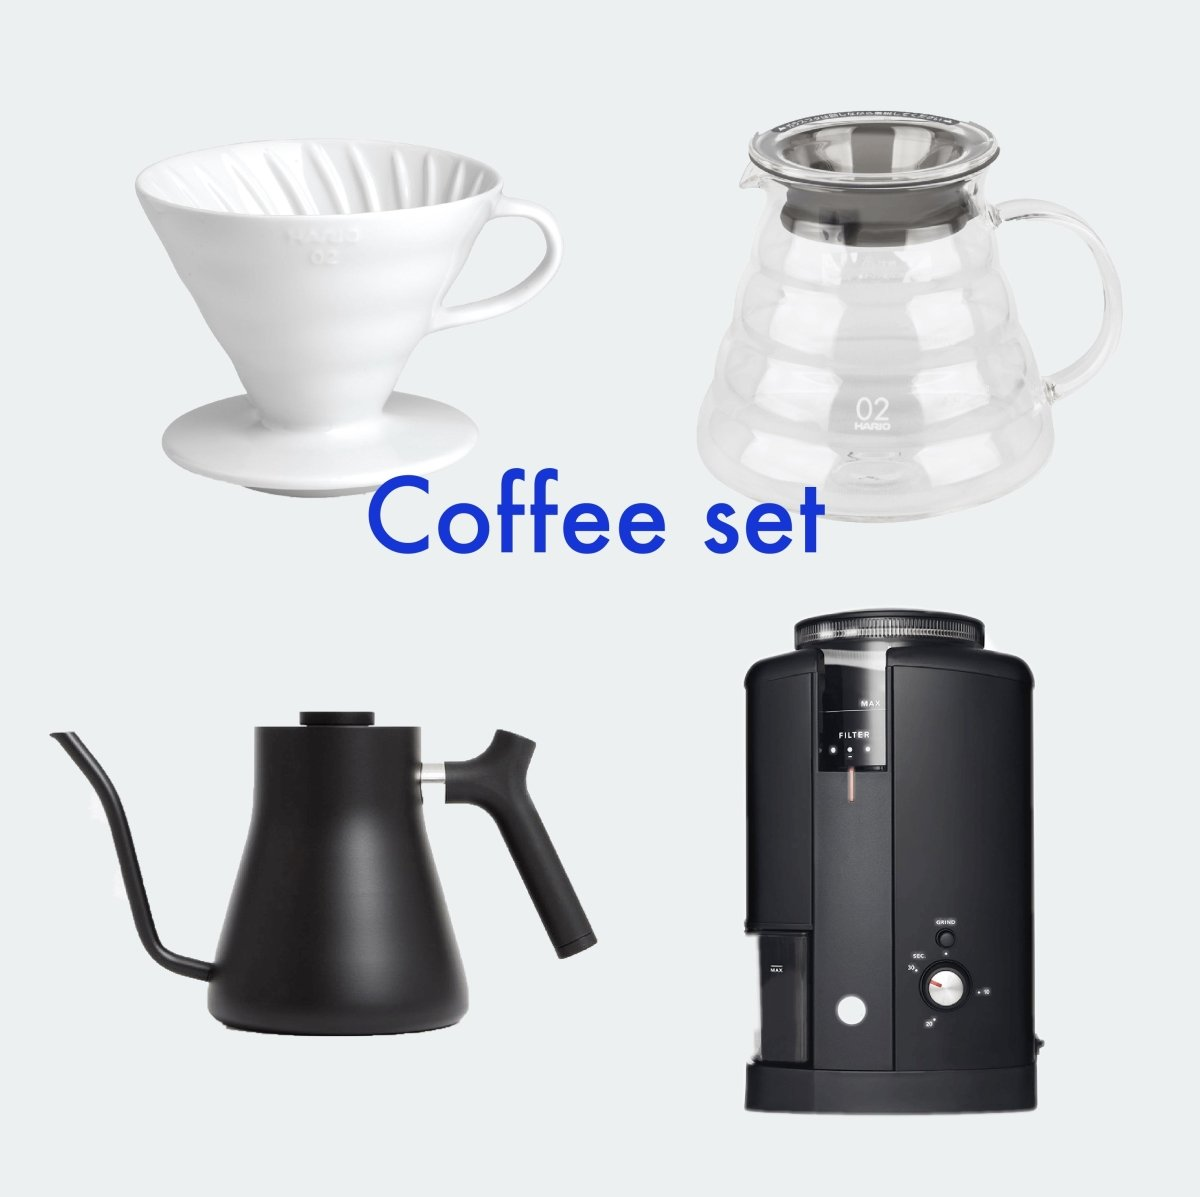 Hario Brewing Set with Wilfa Coffee Grinder, Stagg Kettle + Coffee - Bean Bros.